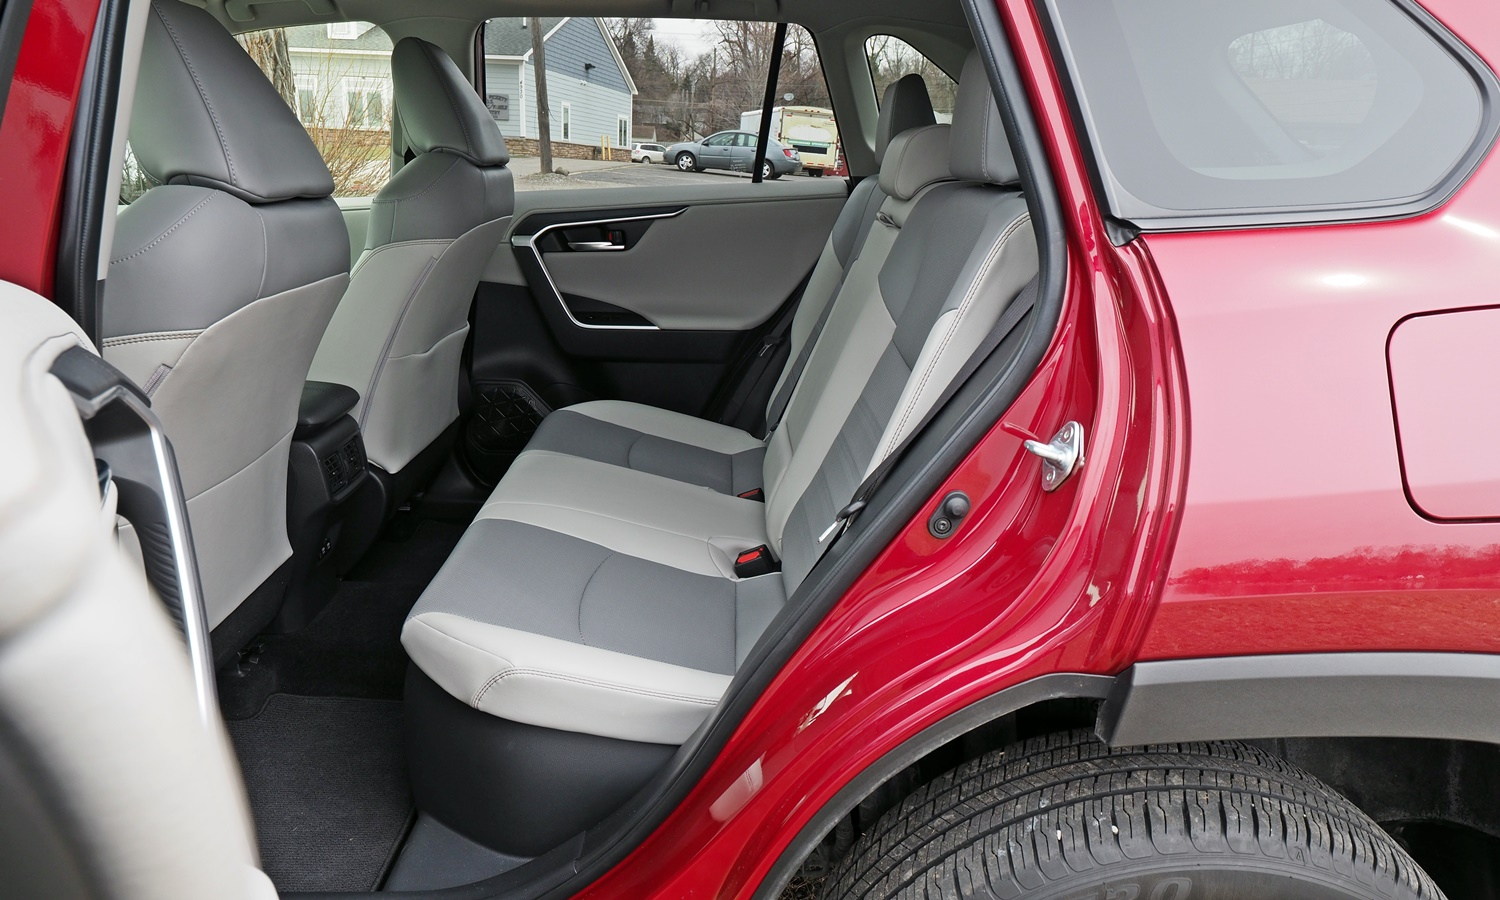 RAV4 Reviews: 2019 Toyota RAV4 rear seat